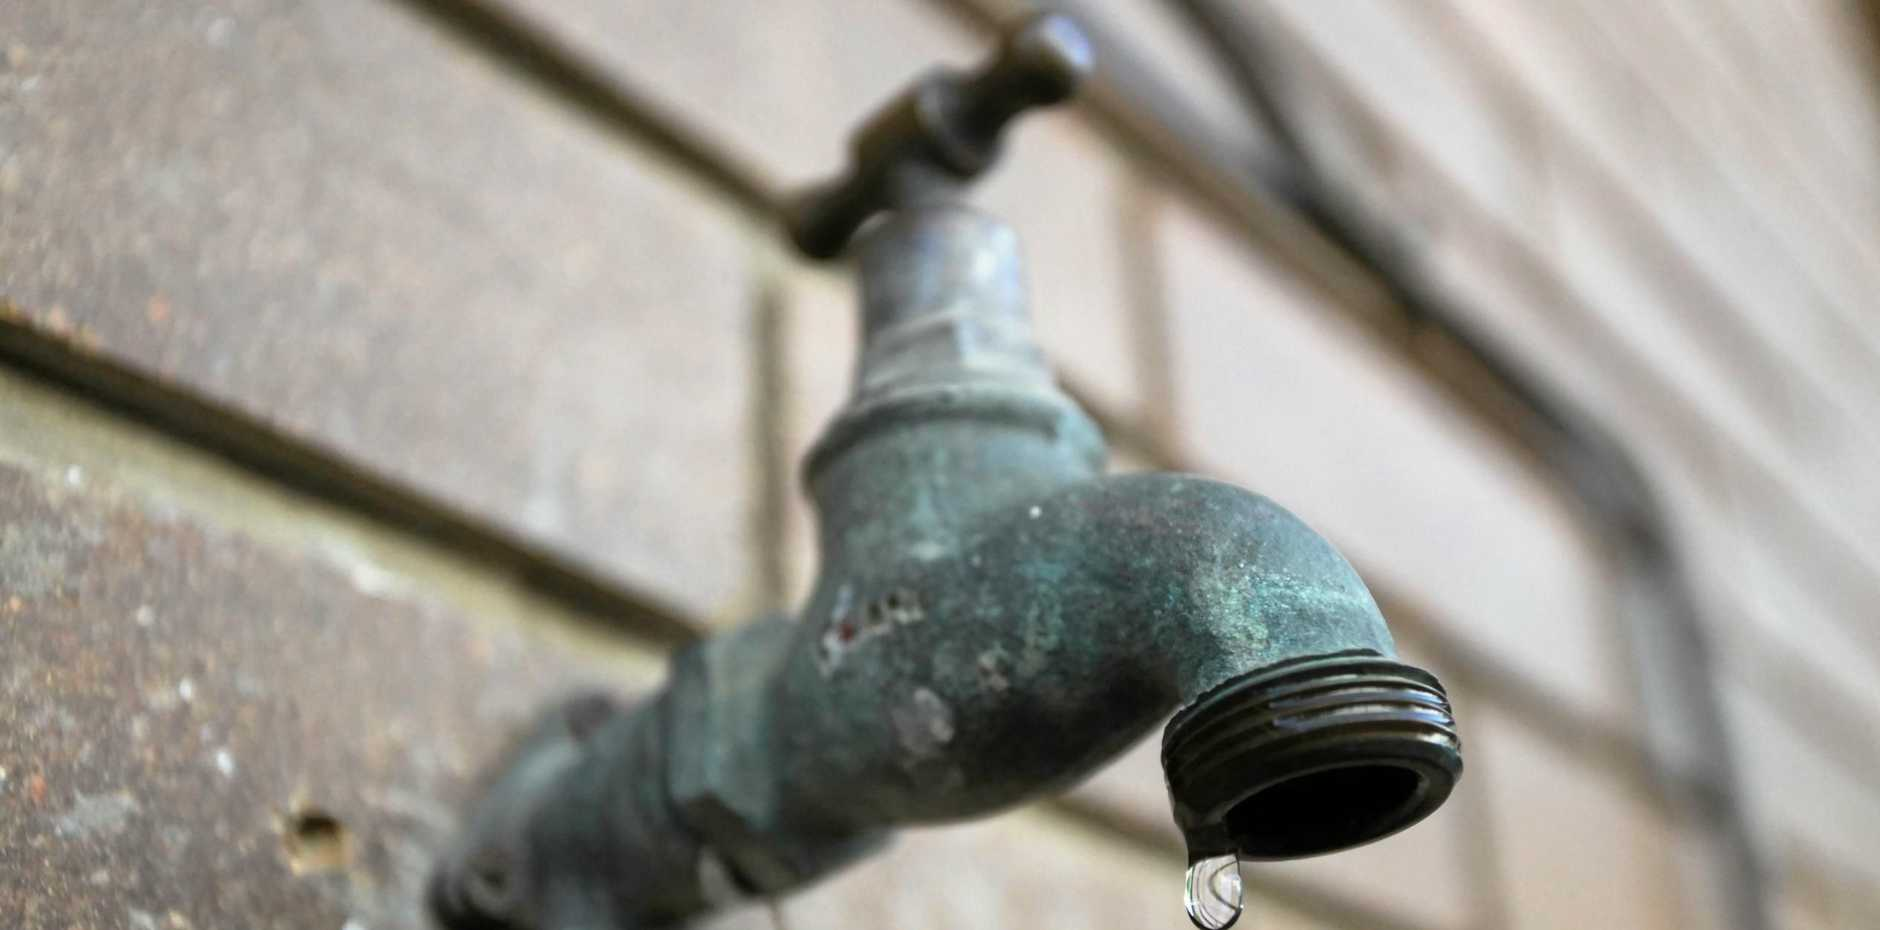 WATER ISSUES: Residents are asked to help conserve water while council resolves the boil water alert.